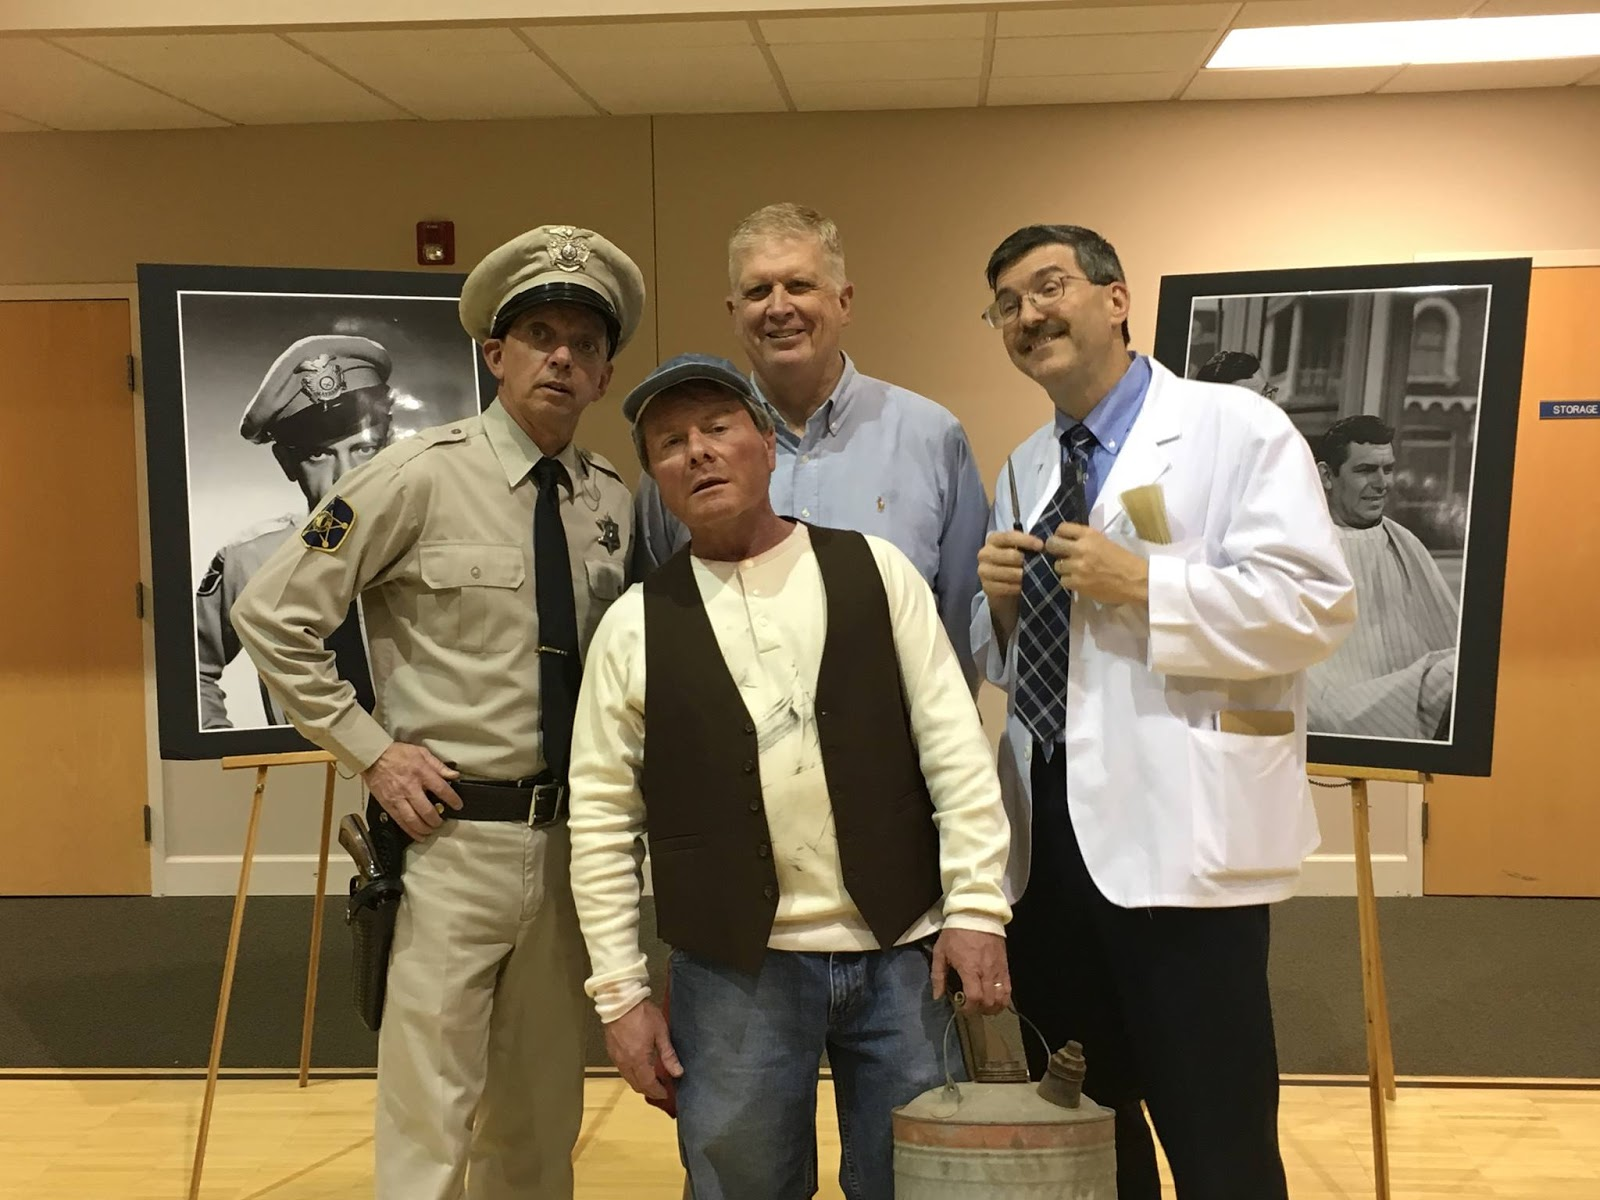 Memories of Mayberry Day in Valley Head, Alabama